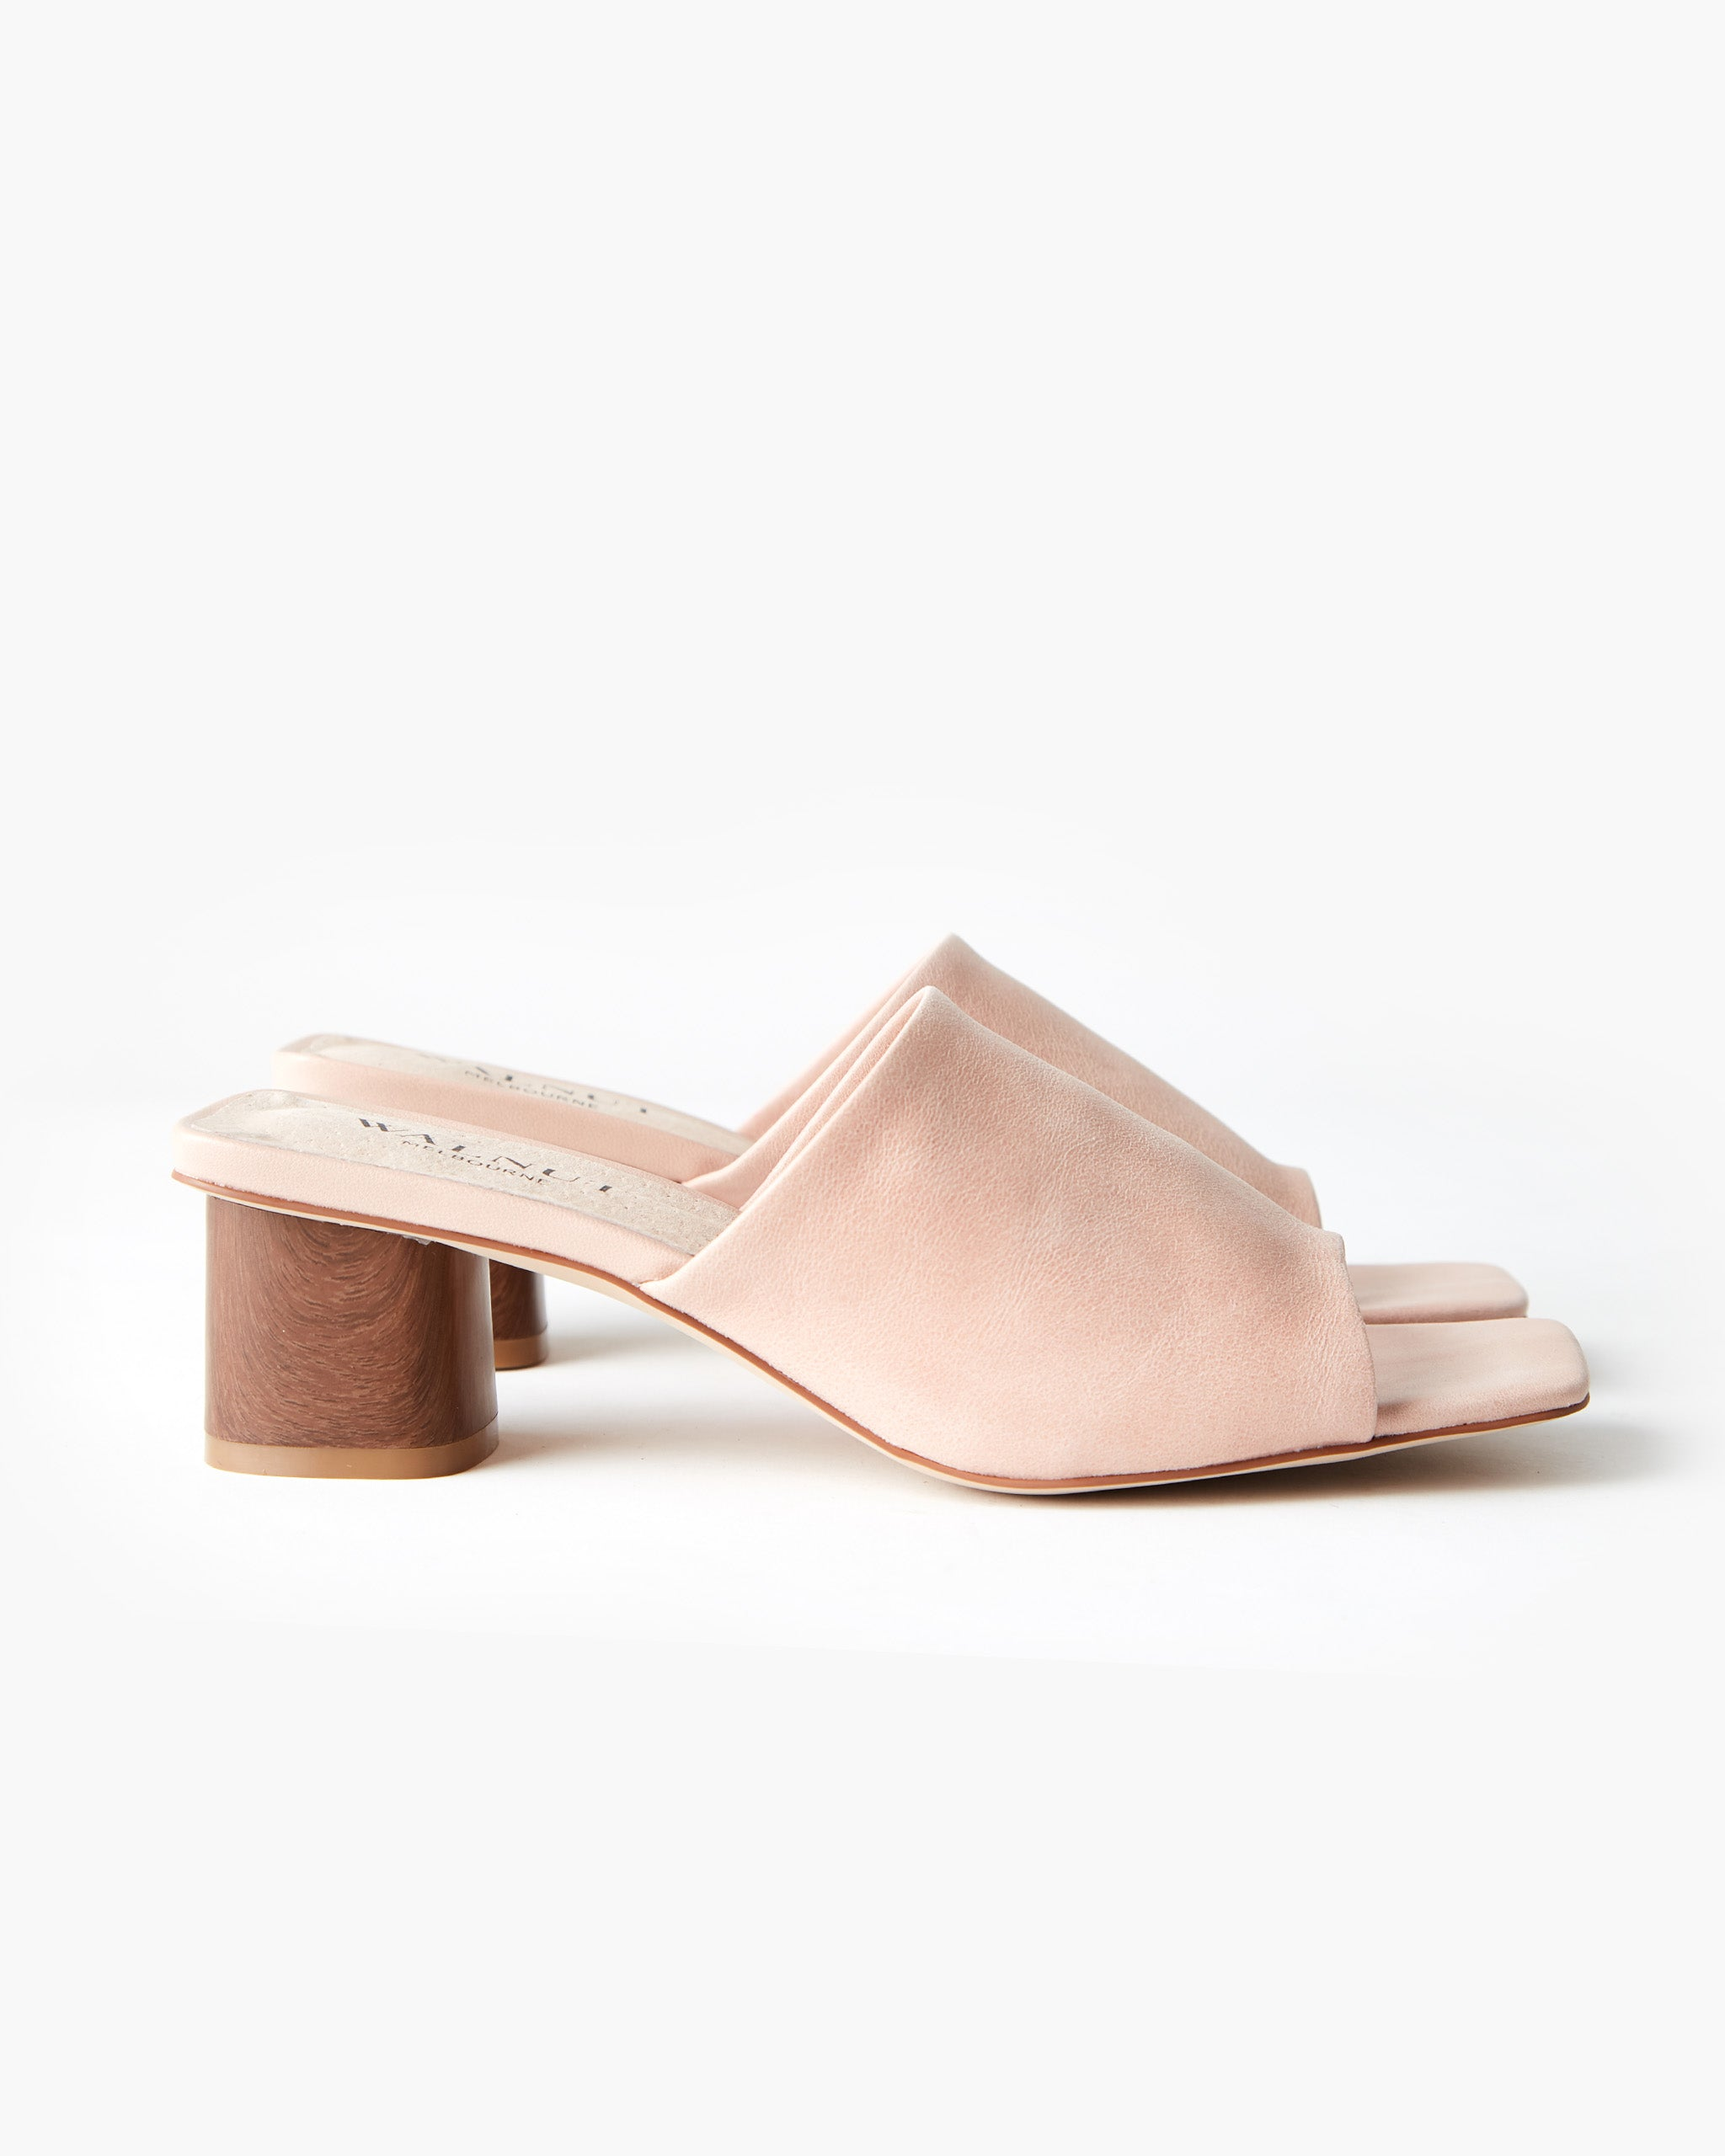 Indie Leather Block Heel - Peony